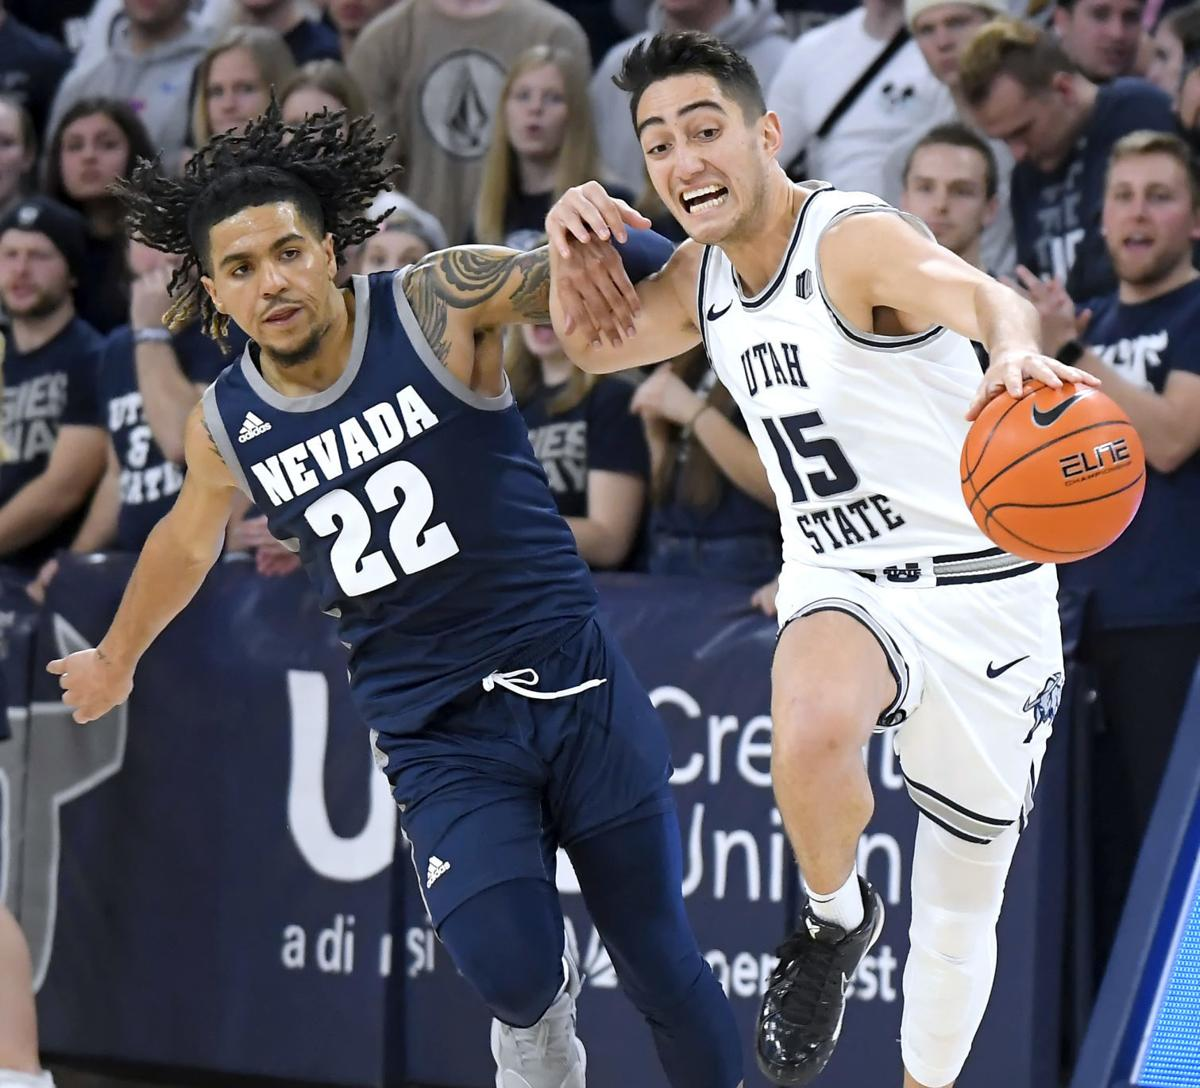 Nevada Utah St Basketball secondary